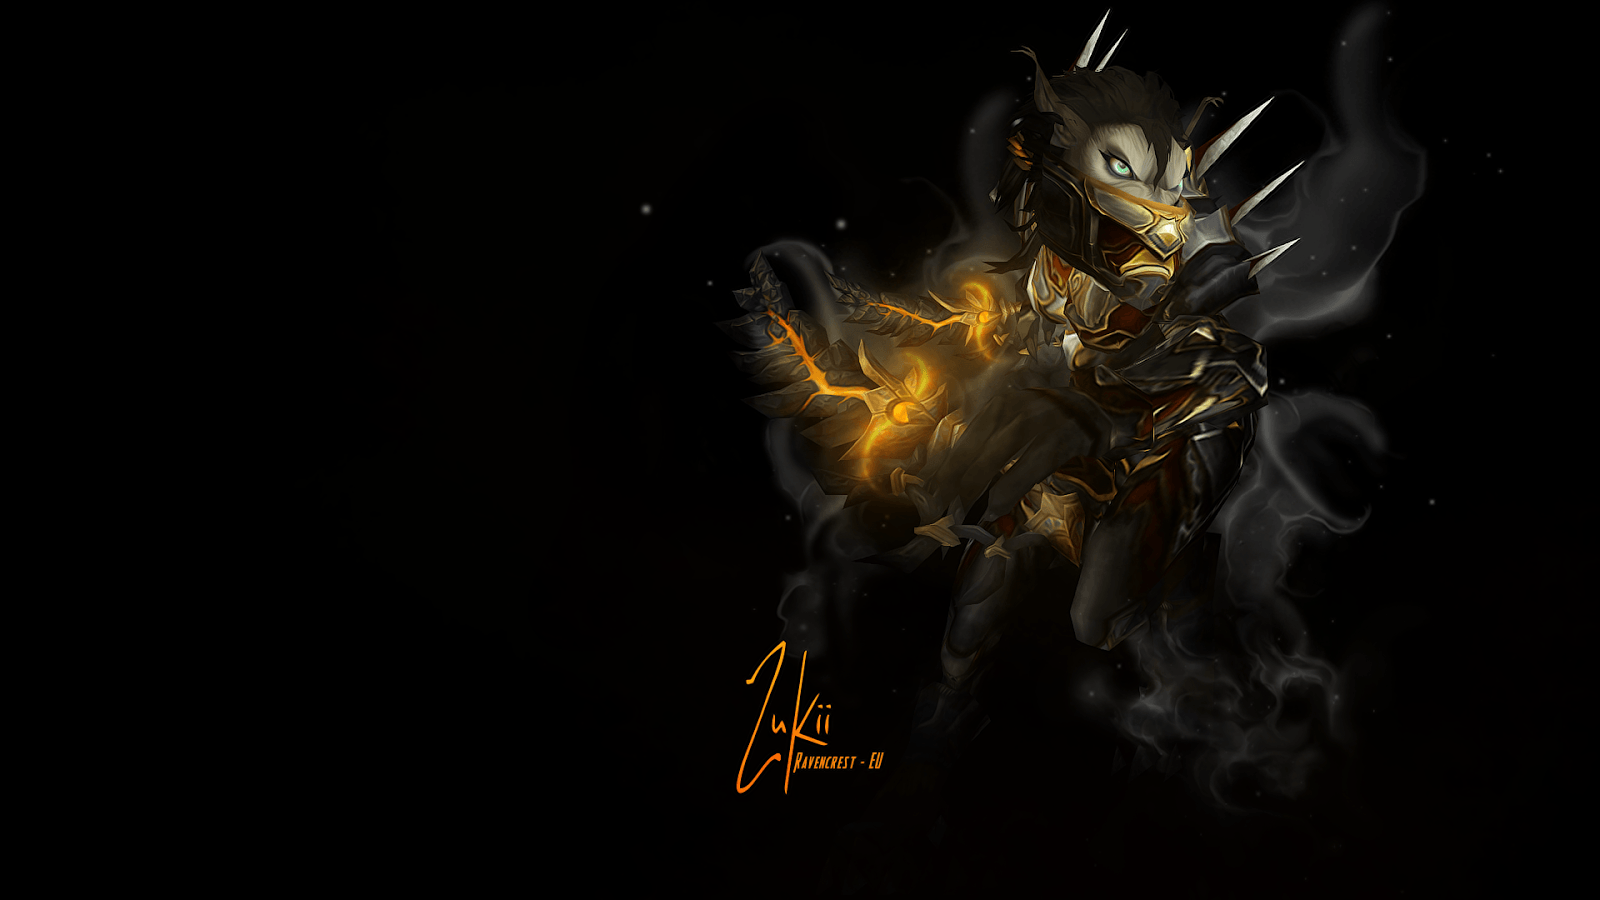 Twitch League Of Legends Wallpapers Wallpaper Cave